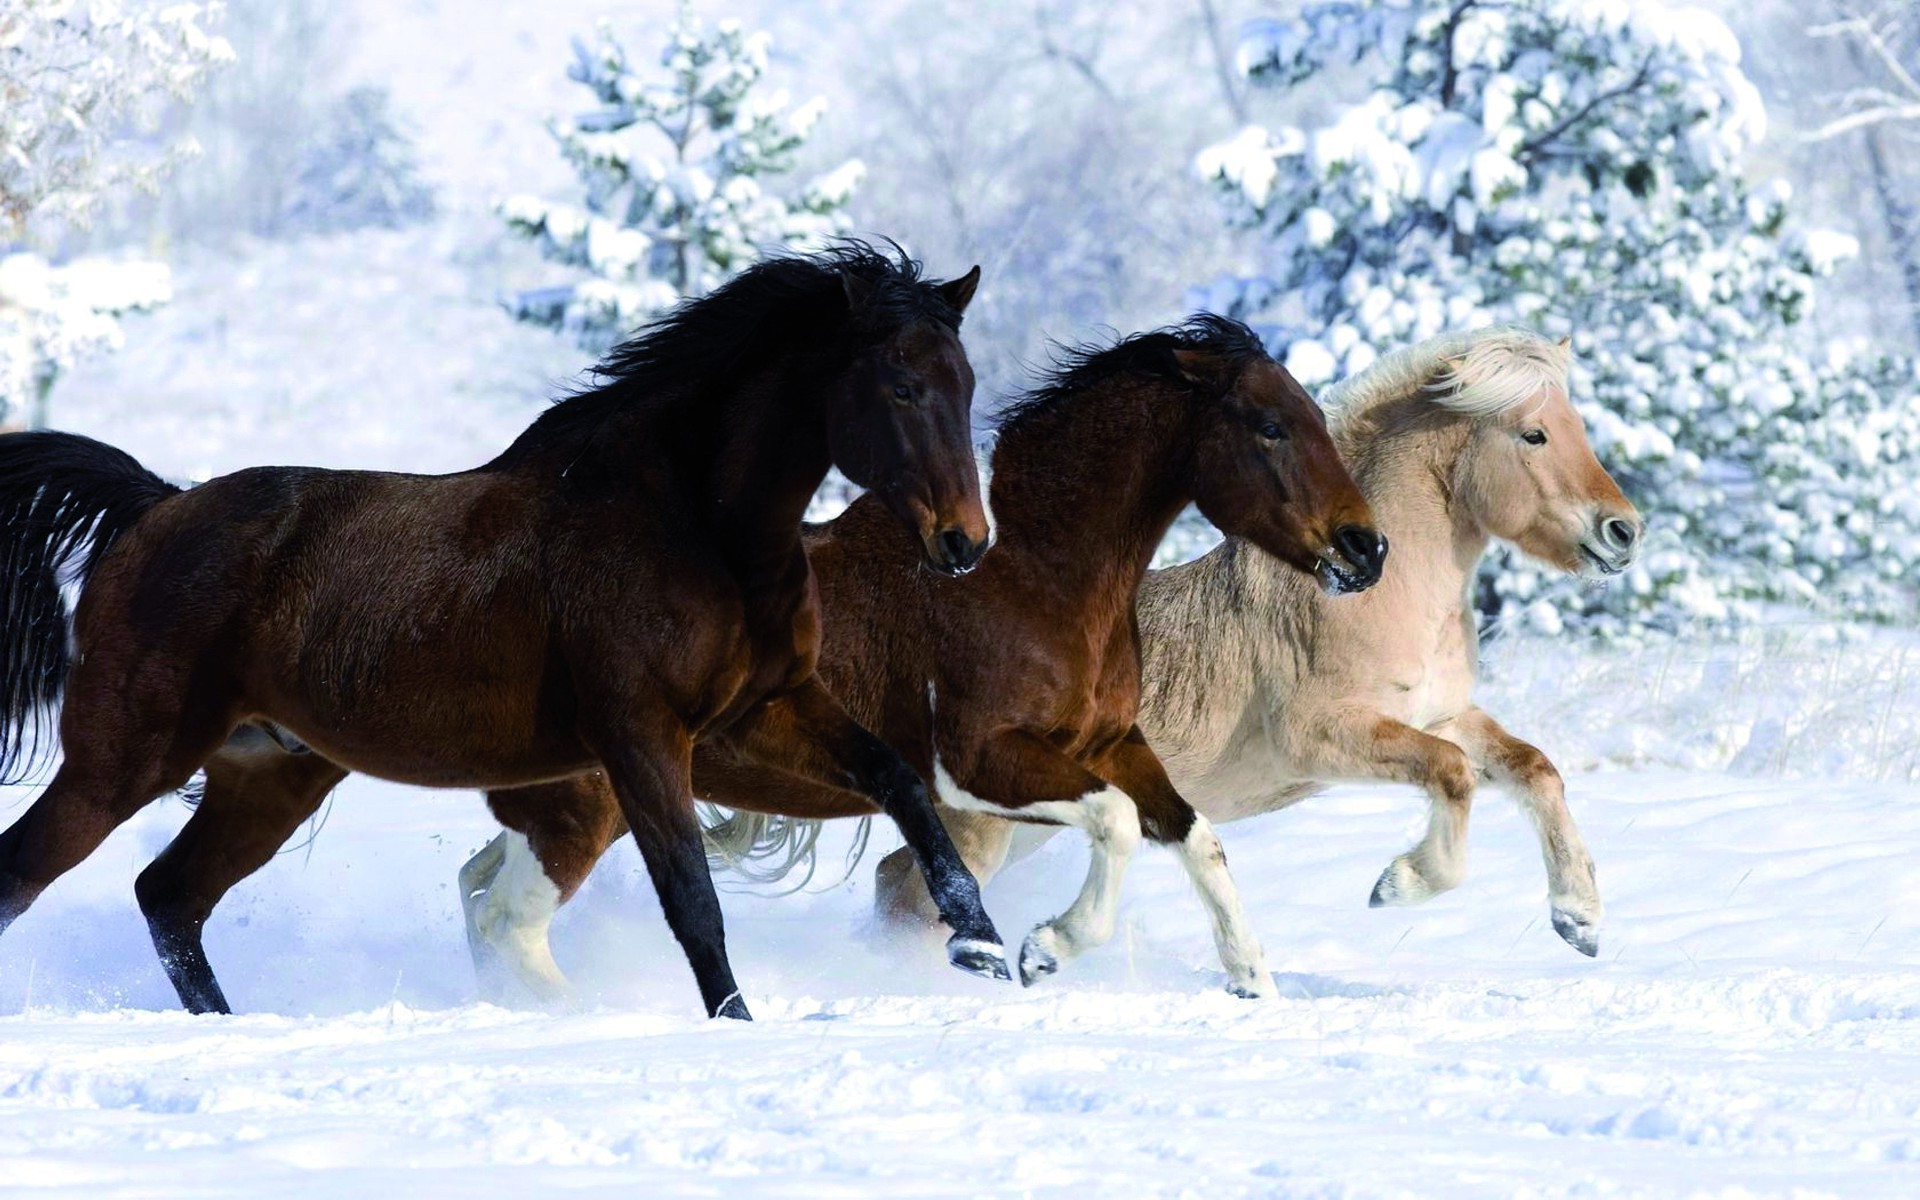 horses horse mammal cavalry equestrian equine stallion animal mane mare winter action thoroughbred gallop snow pony farm fast sitting run